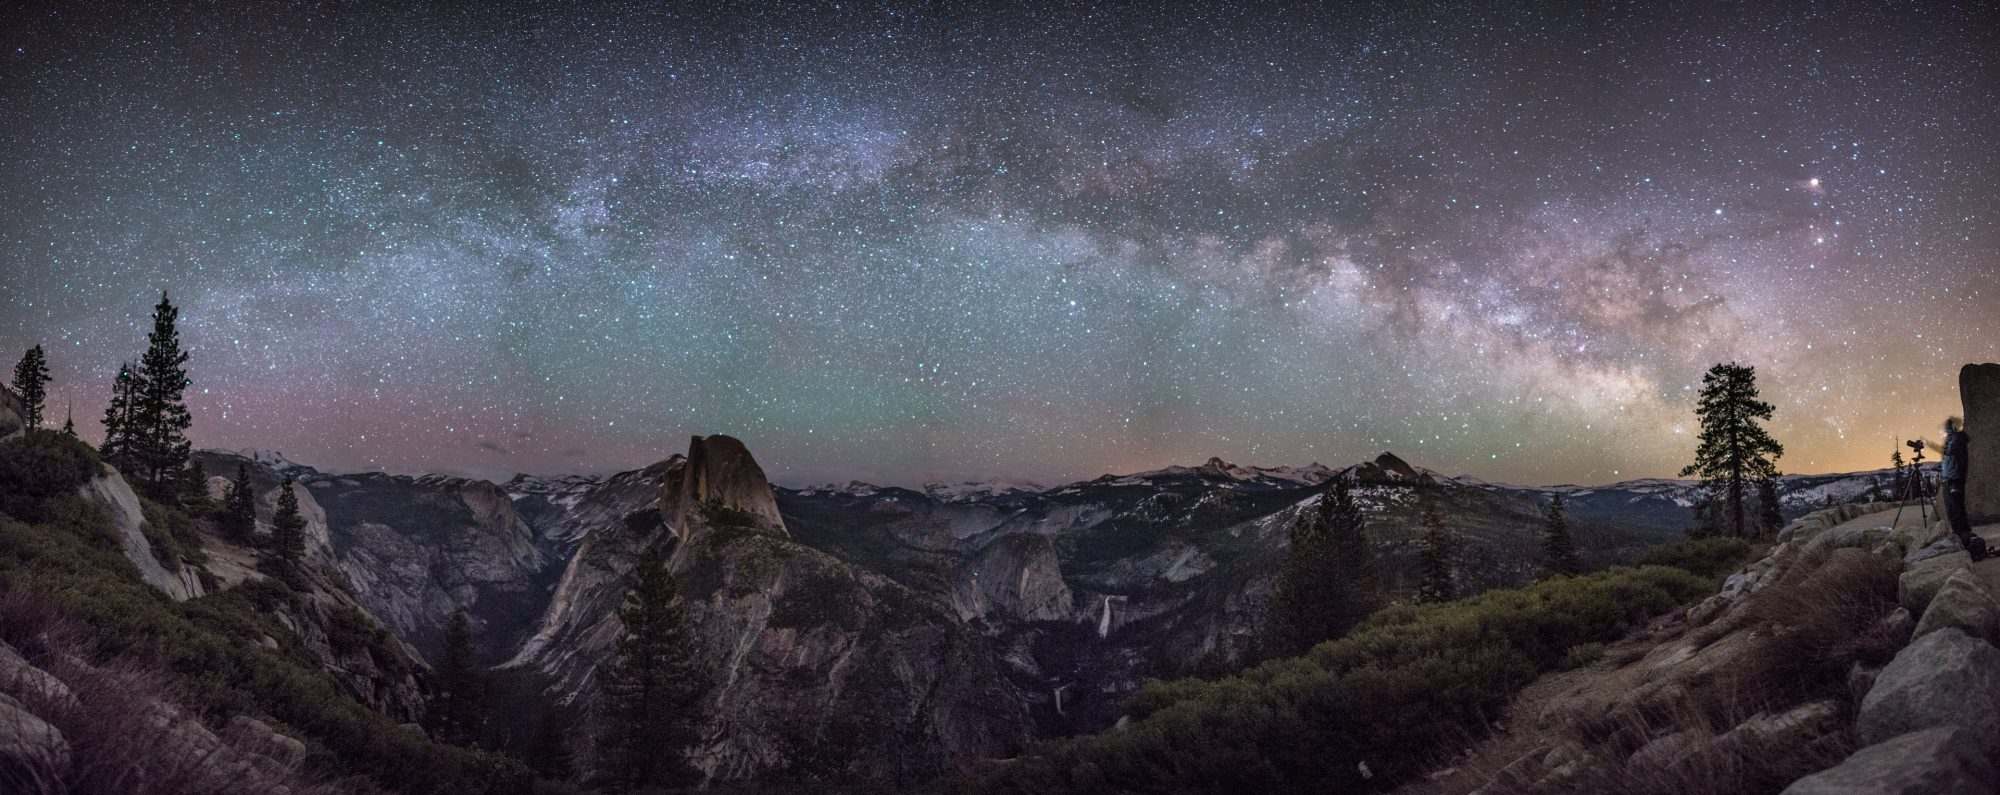 Milky Way, Tunnel View, Yosemite National Park